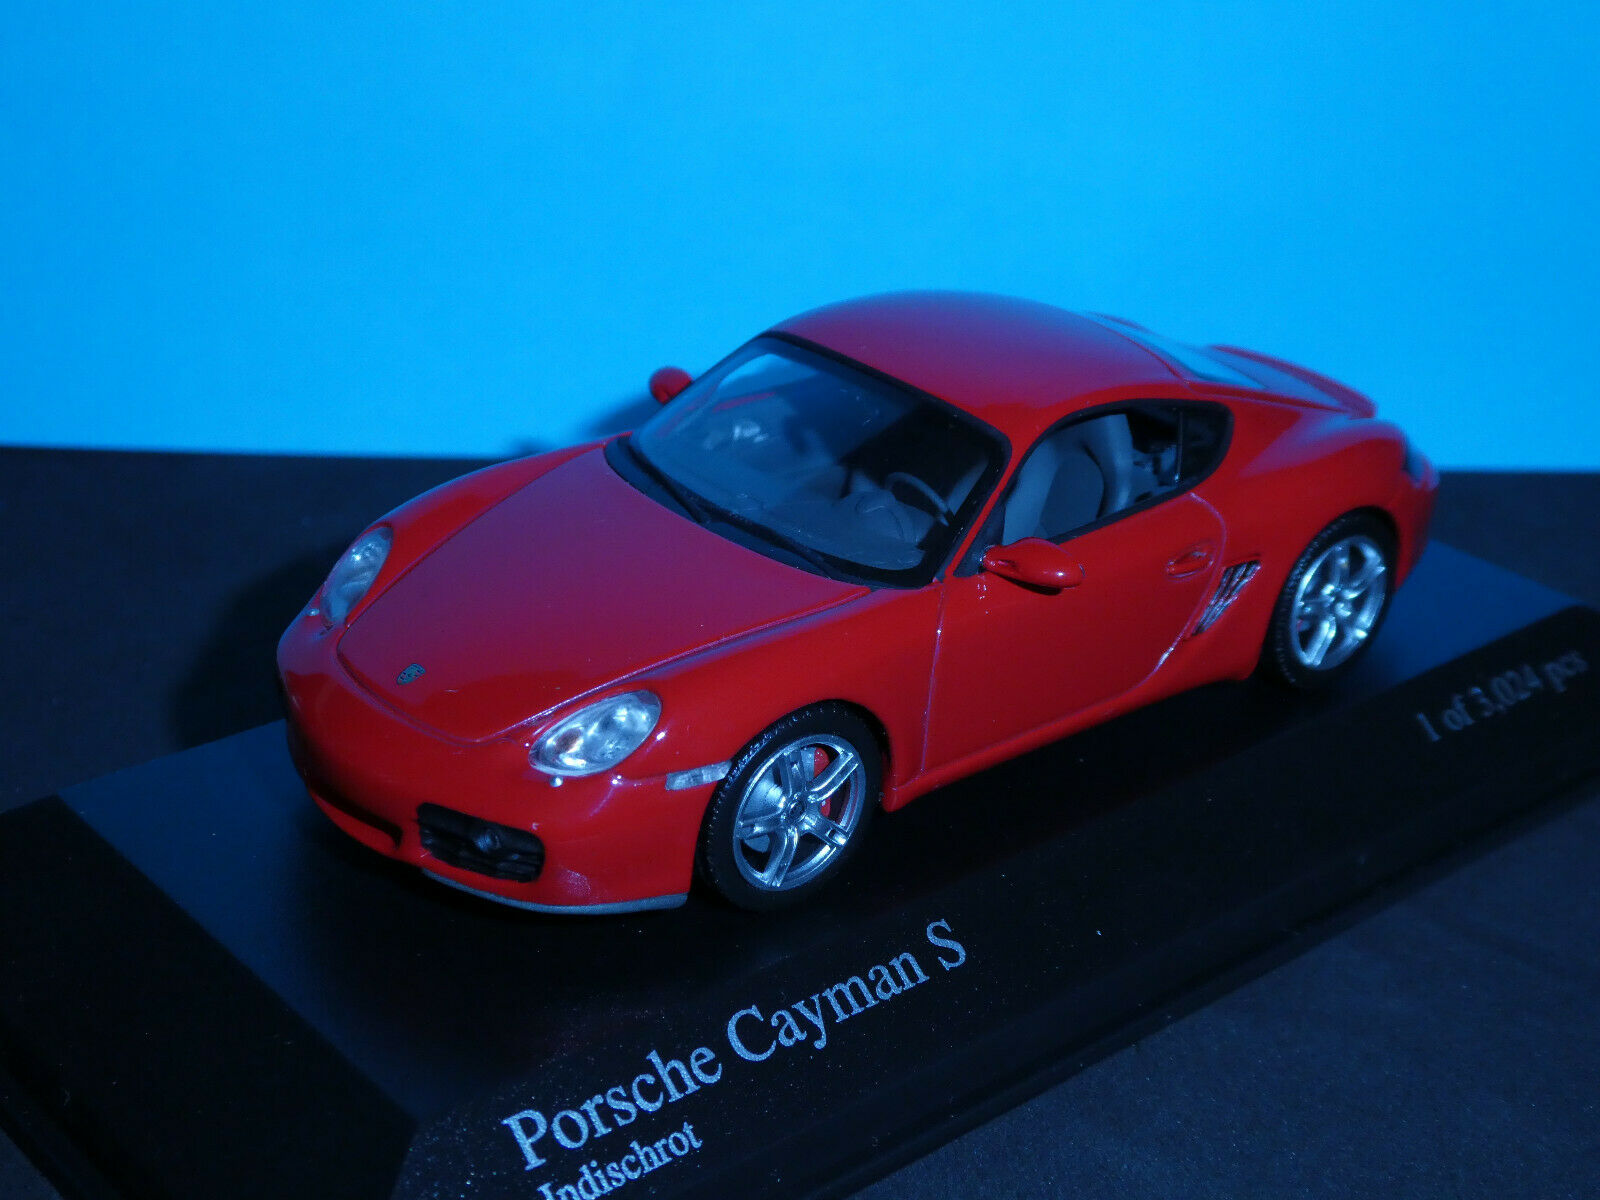 Porsche Cayman S in Indischred from 2005   NLA Very Rare Minichamps model.